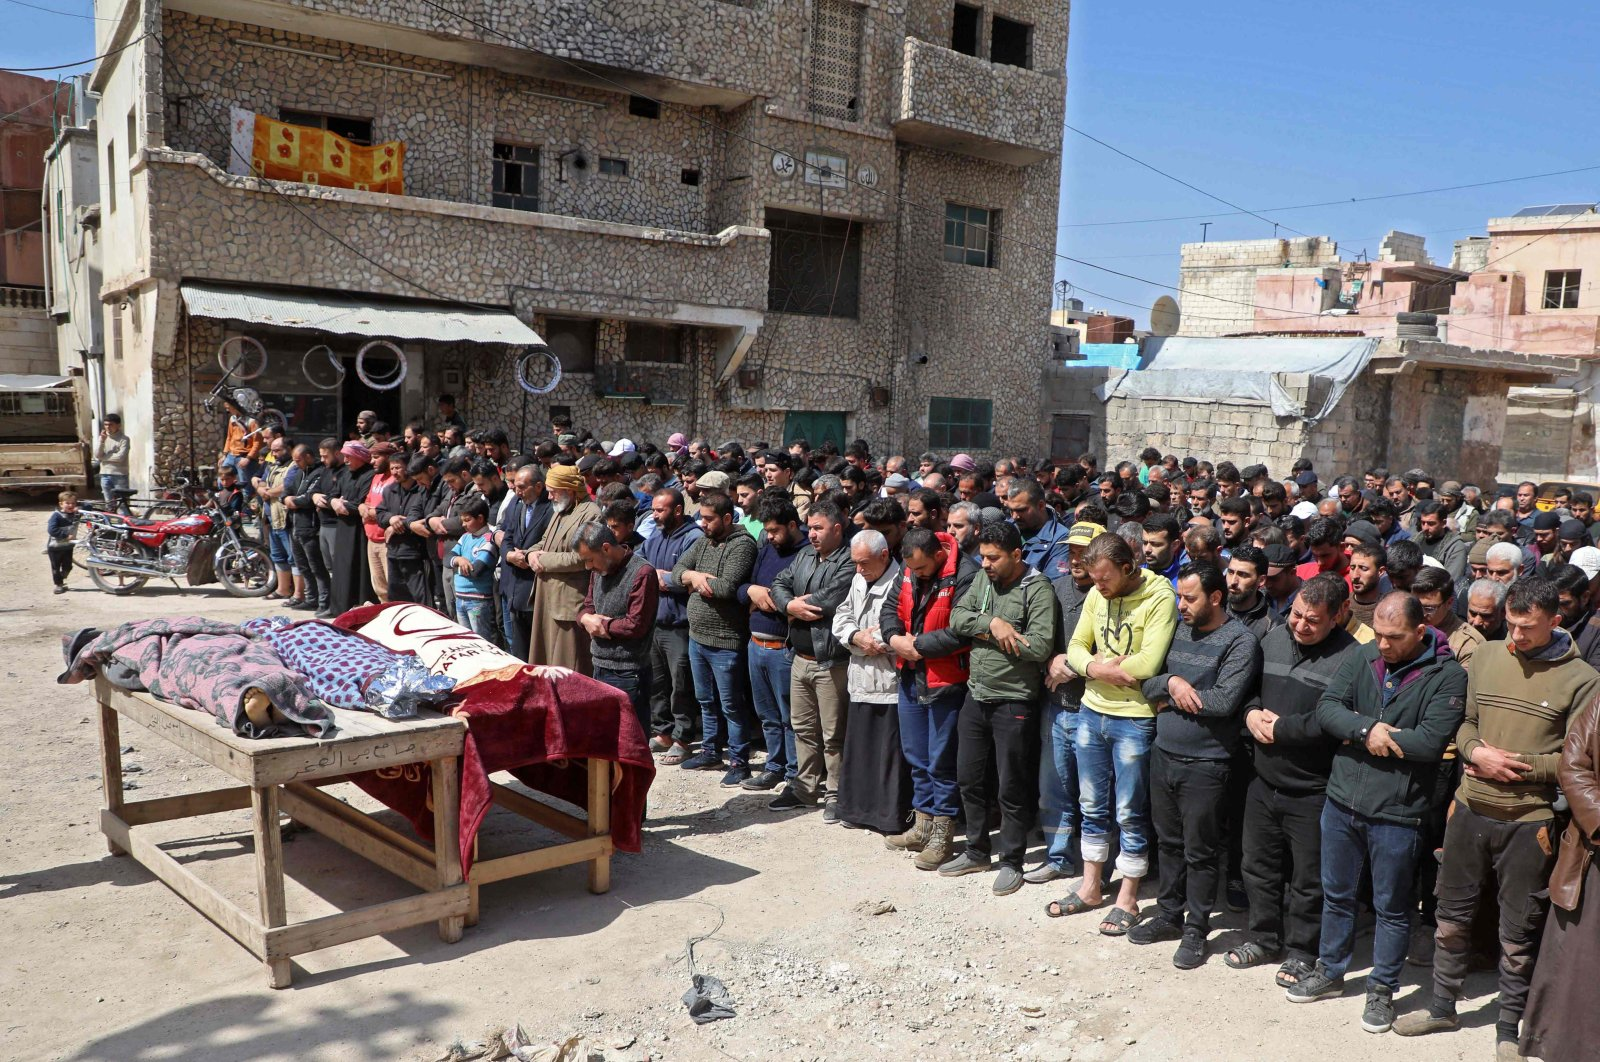 Mourners pray during a funeral in the village of Atareb in the northern province of Aleppo, Syria, March 21, 2021. (Photo by AAREF WATAD via AFP)